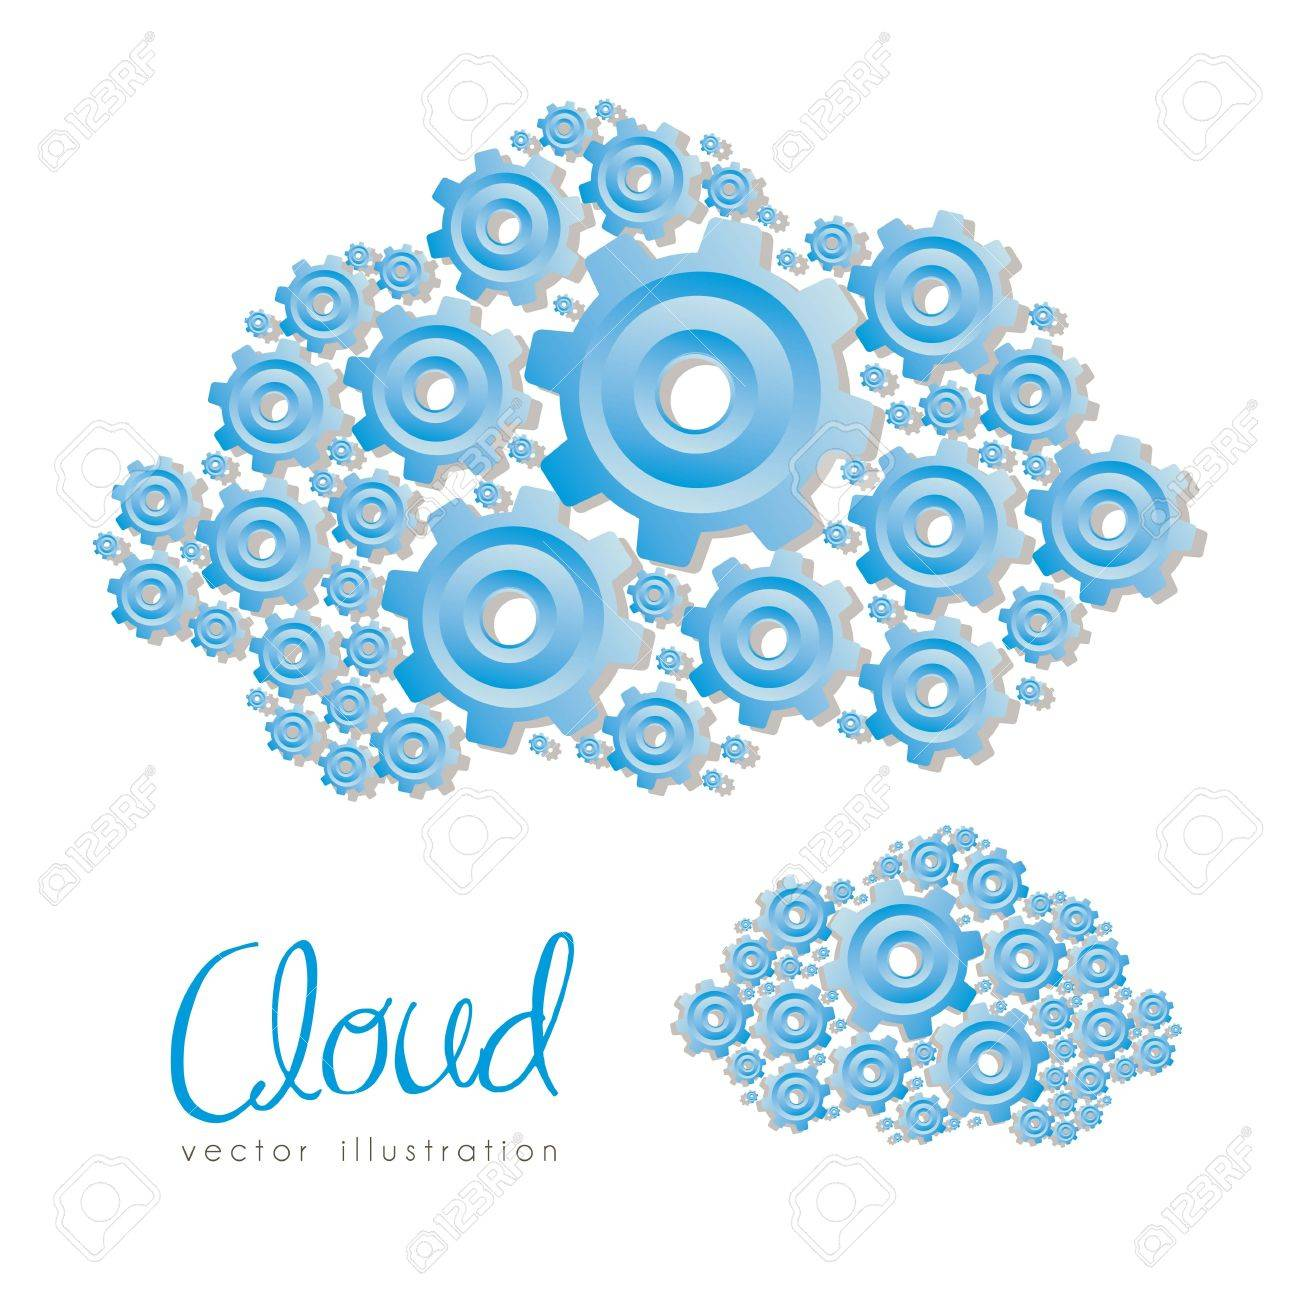 illustration of clouds formed with blue gear, vector illustration Stock Vector - 15271839